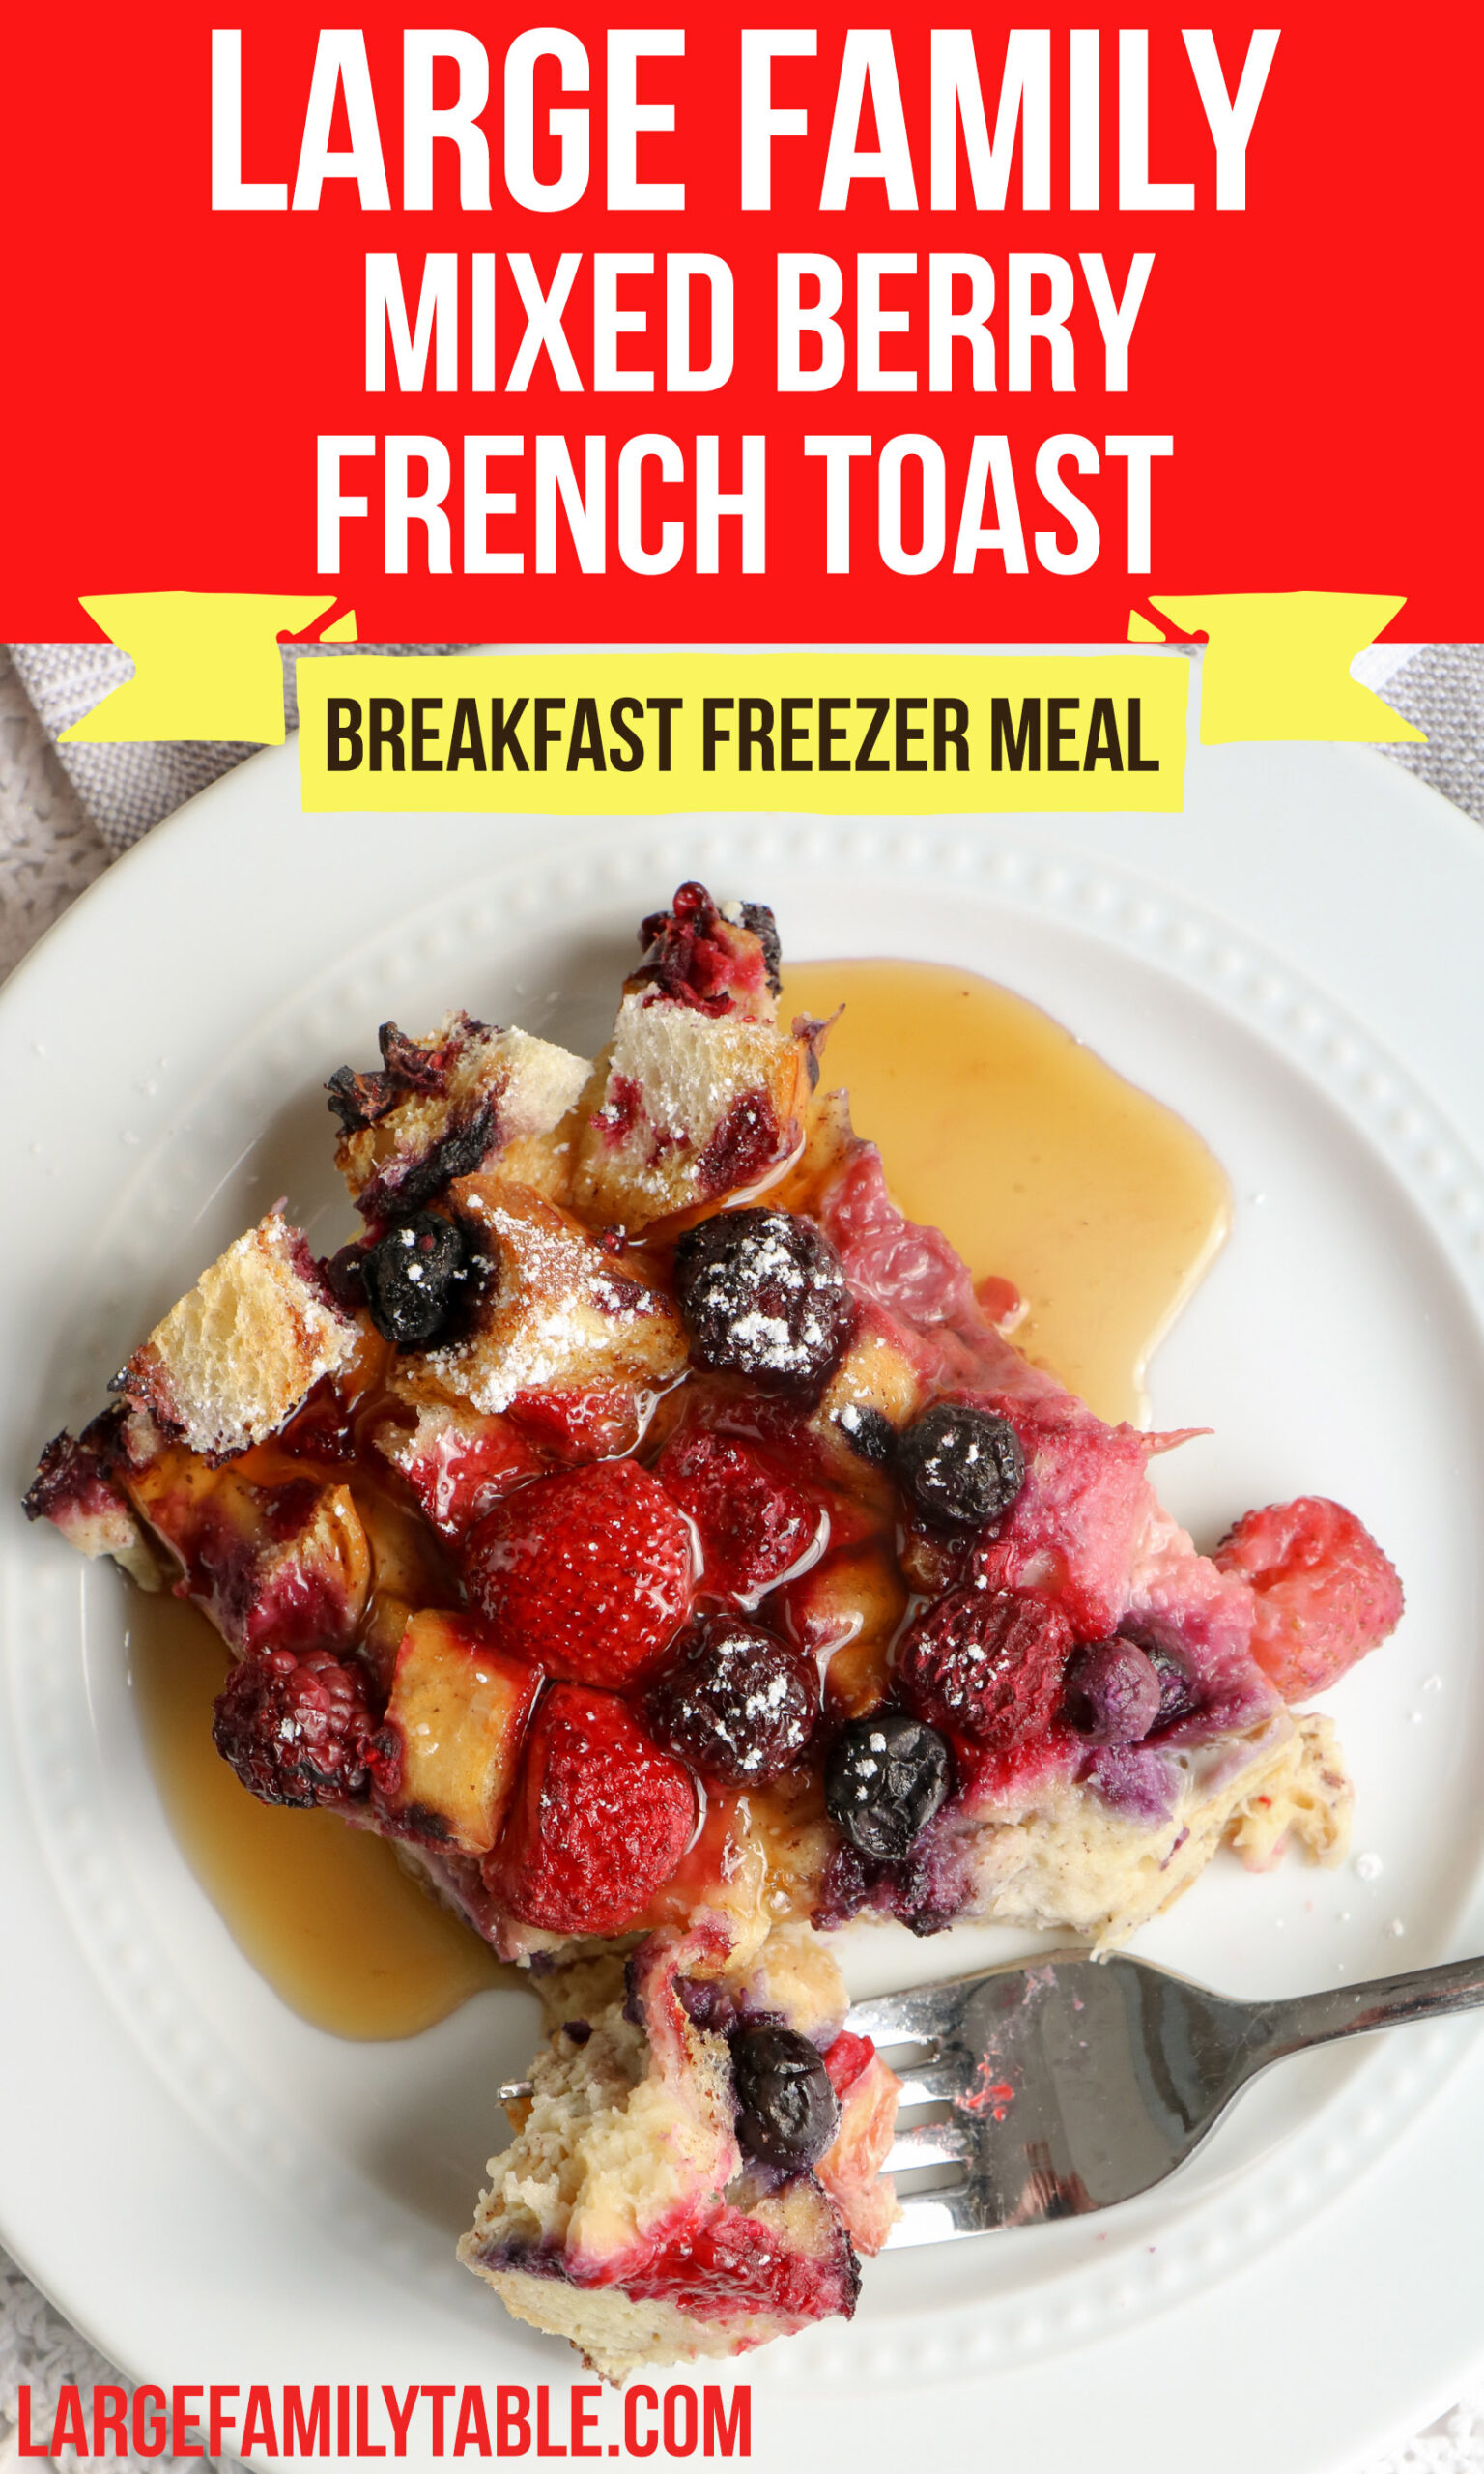 Mixed Berry French Toast